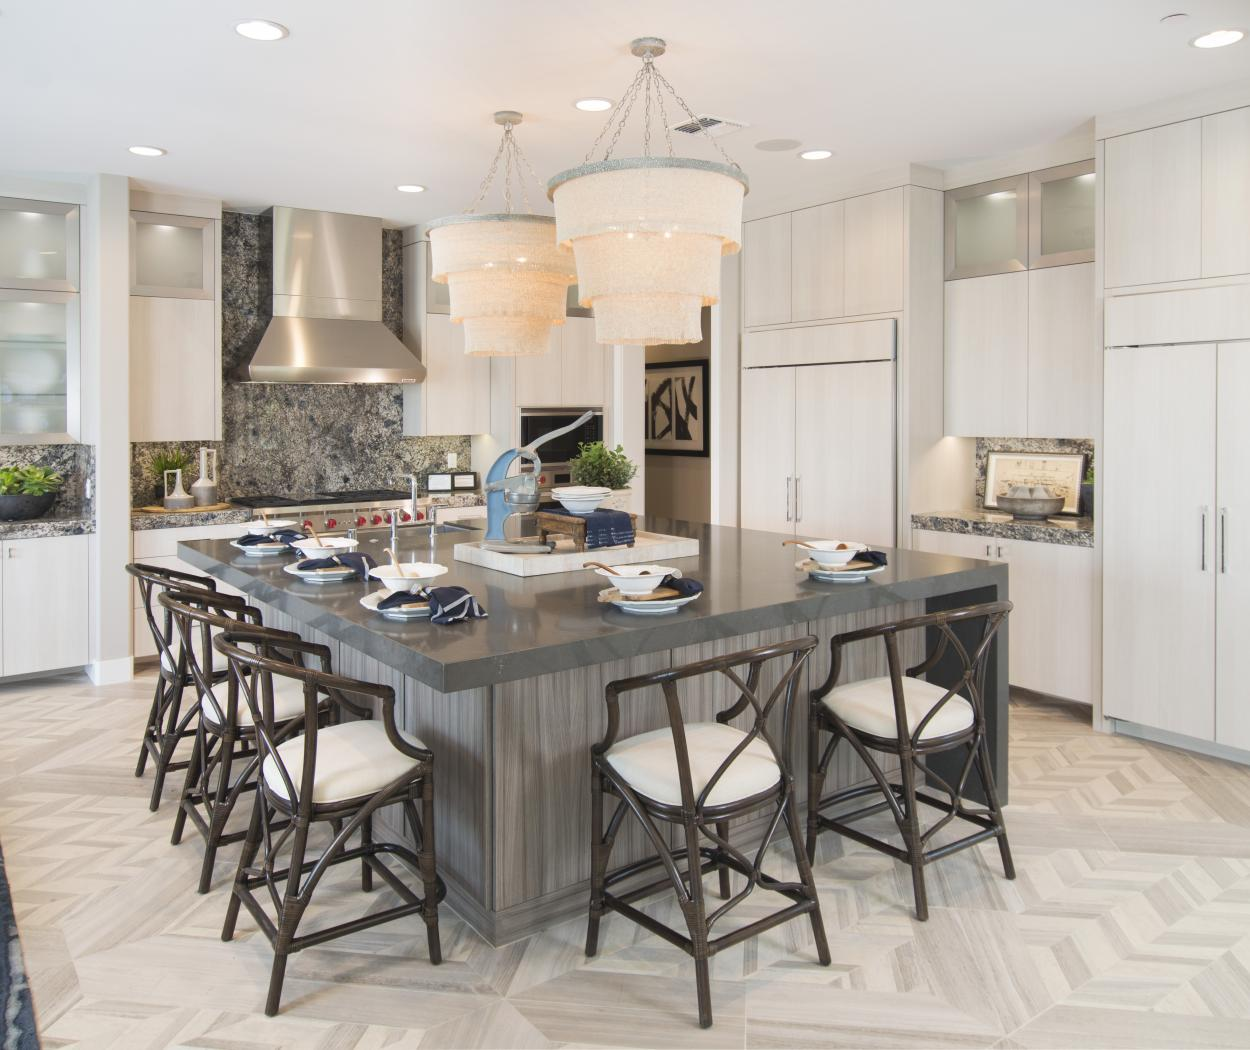 Contemporary White Kitchen with a Grey - Blue Island Built-in Textured Metro Material with Aluminum Door Frames, Glass Inserts and Stainless Steel Appliances